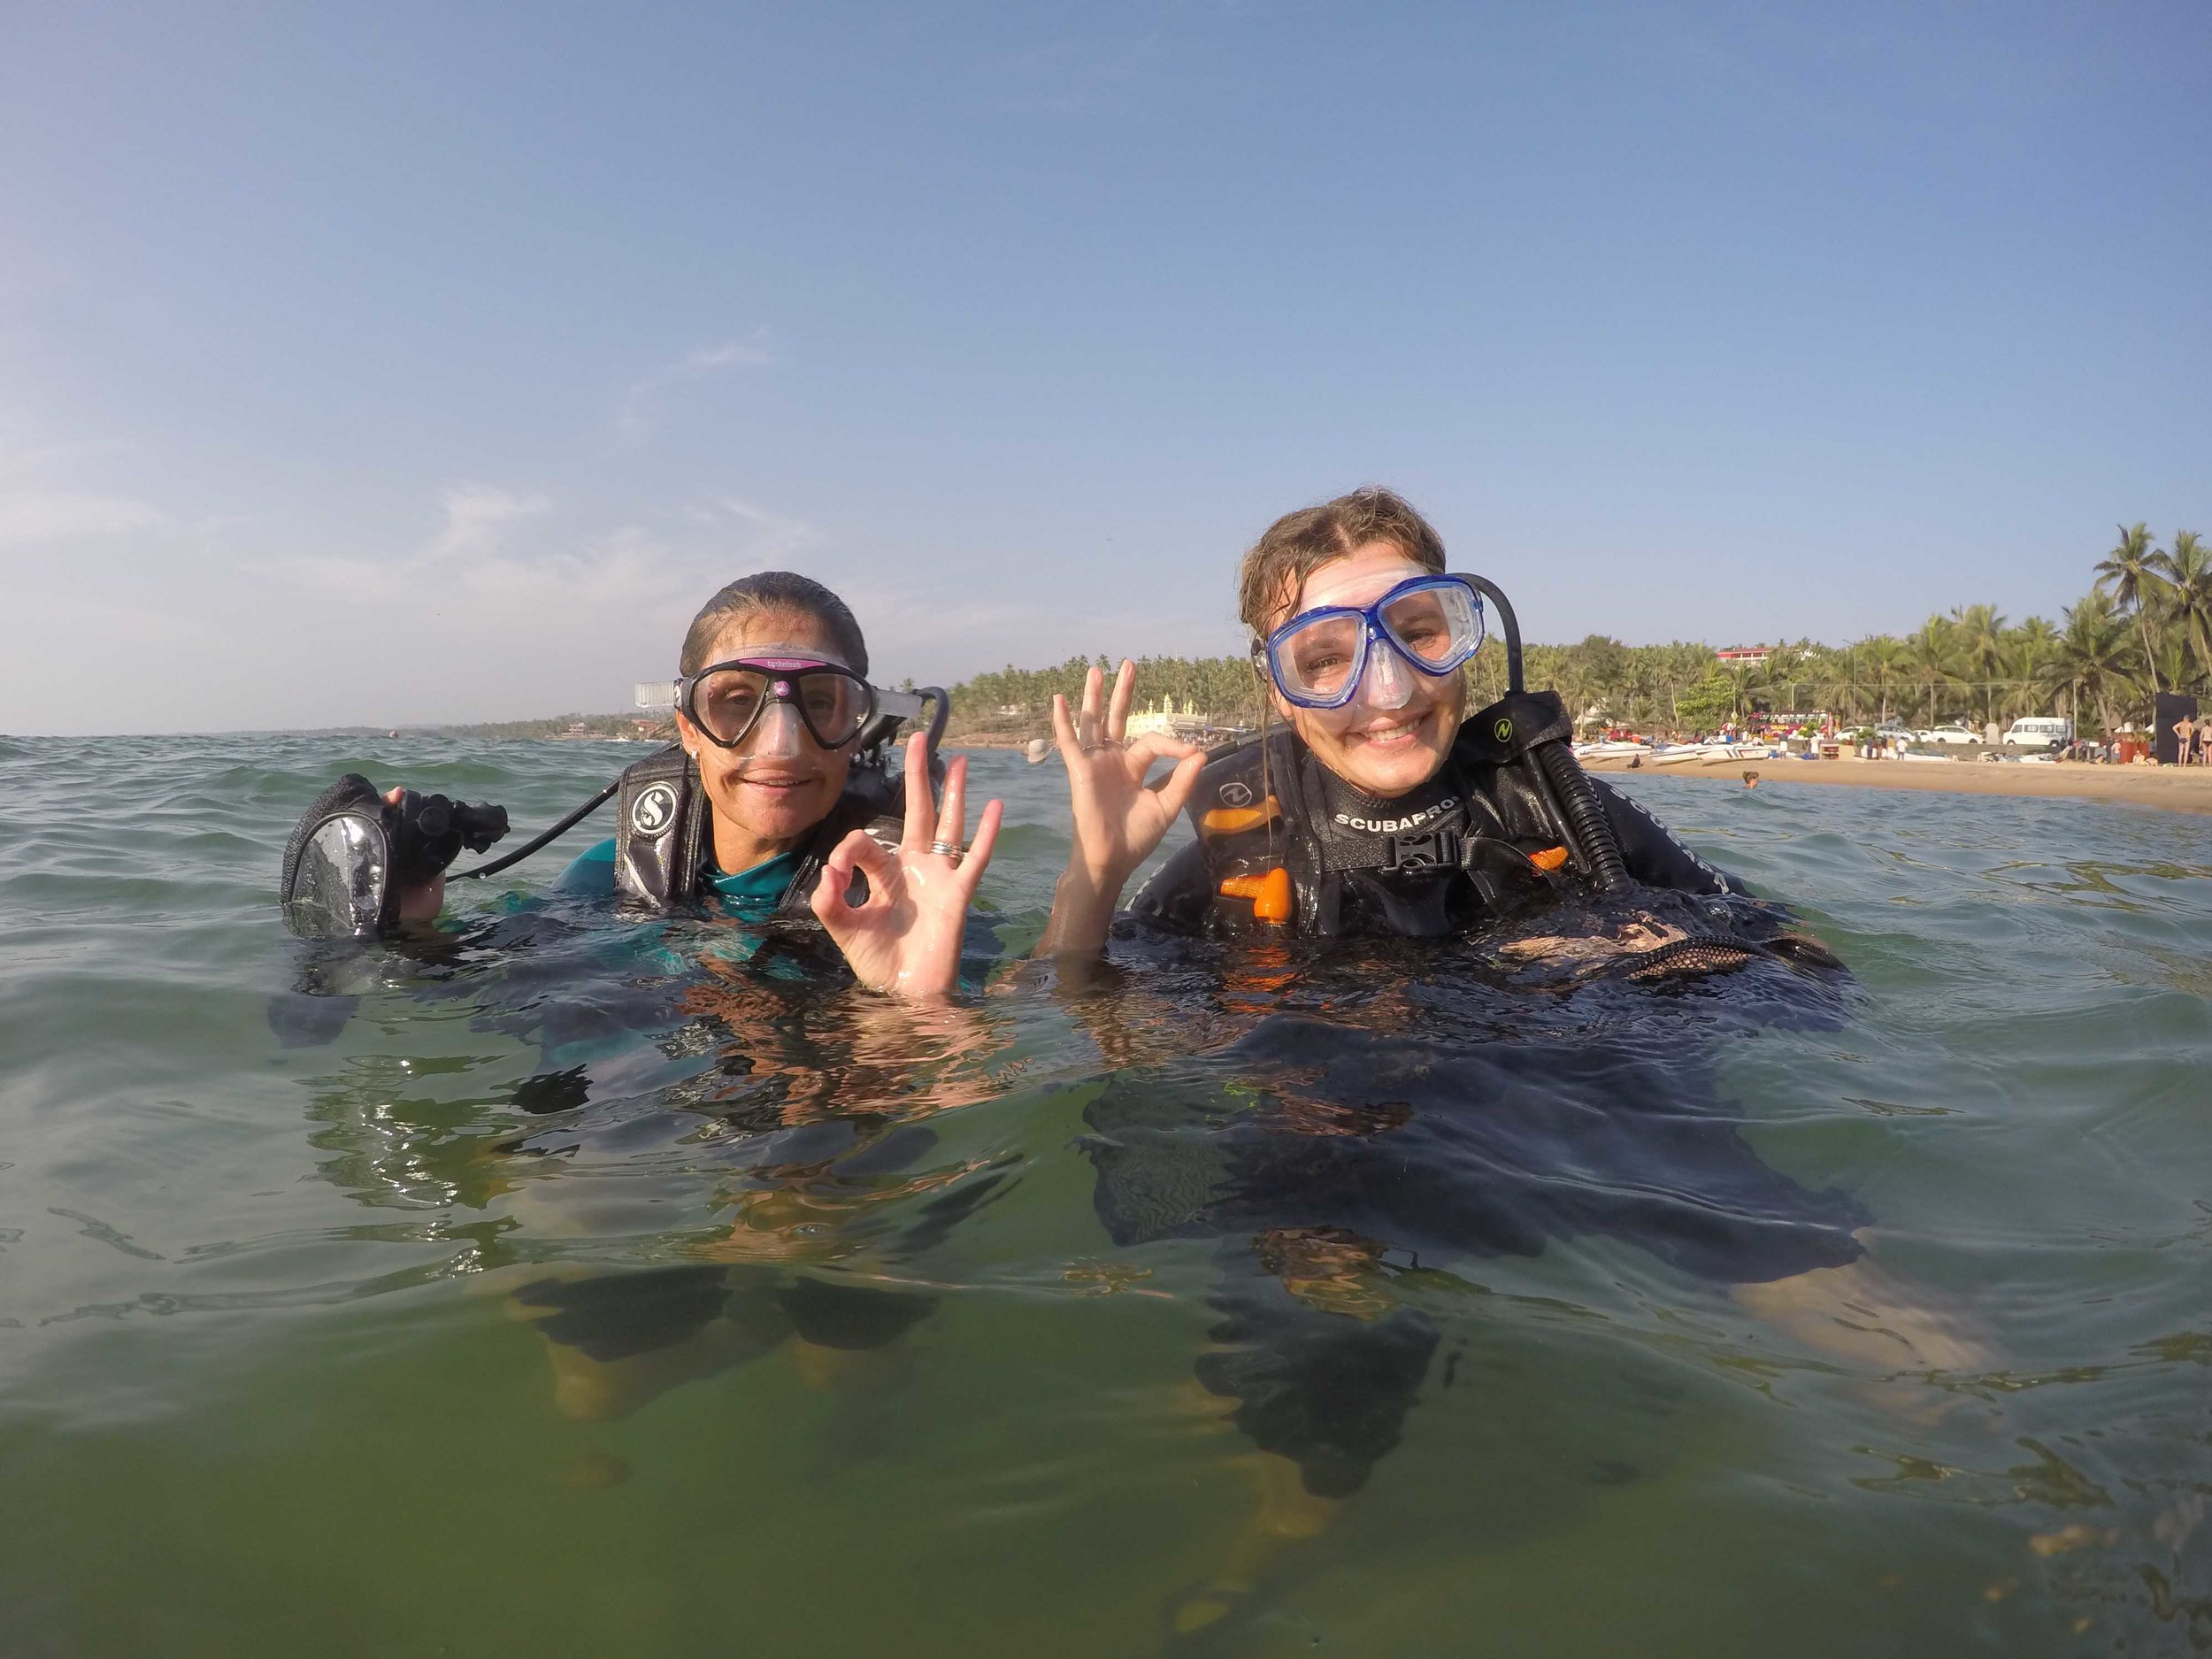 Sarah (left) and I assisting with an underwater clean-up, alongside our partners Bond Safari.